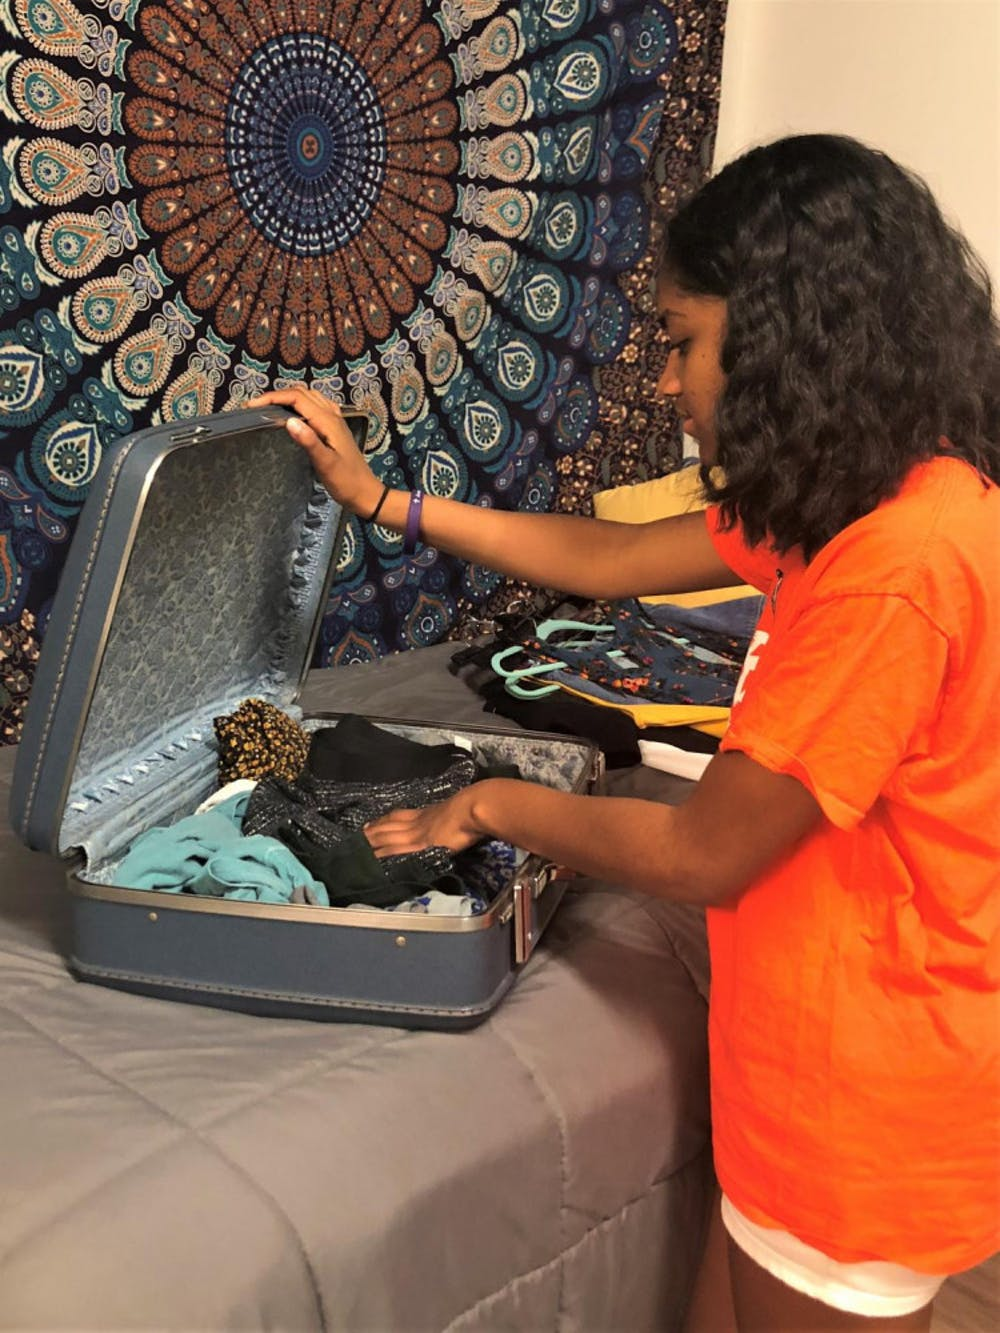 Freshmen Kyra Jackson begins packing her clothes to take home for summer vacation.